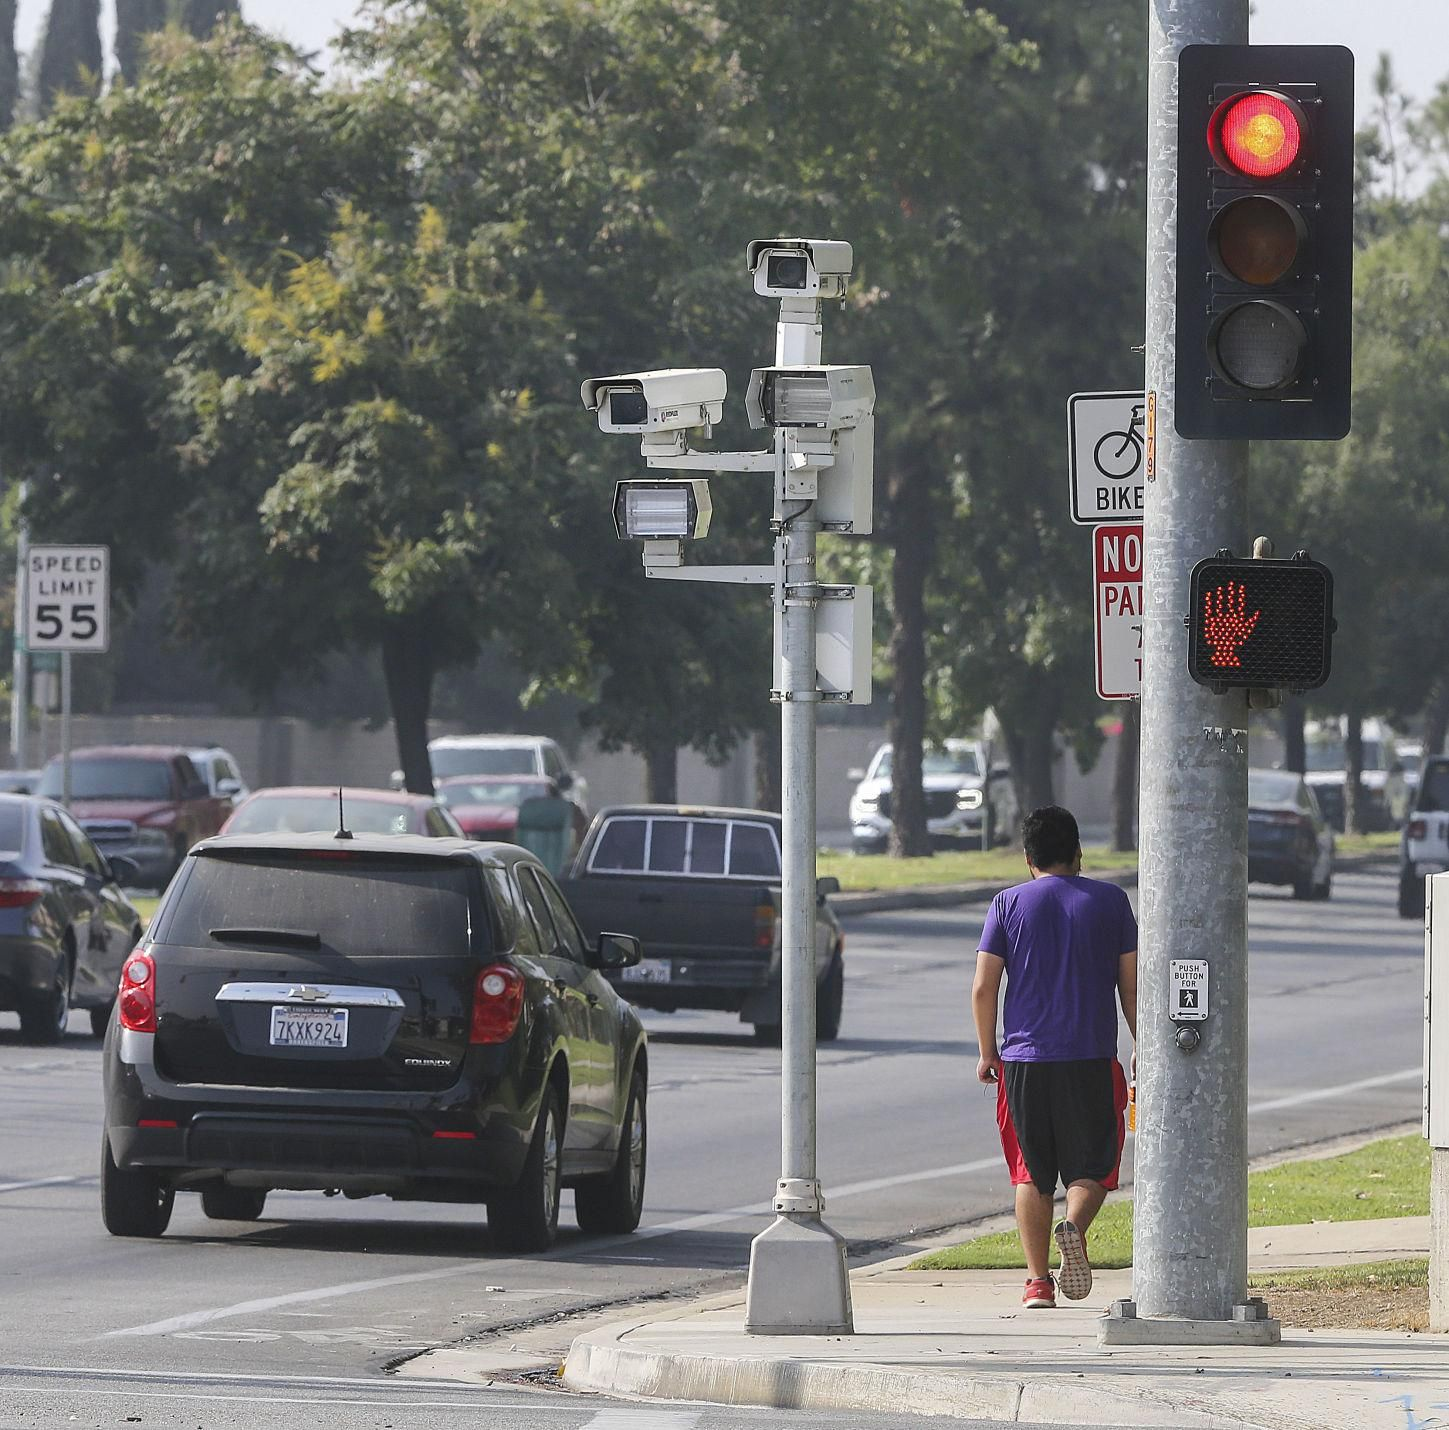 As Red Light Camera Citations Tripled In The Last 10 Years City Maintains Program Saves Lives Red Light Camera Light Red Camera